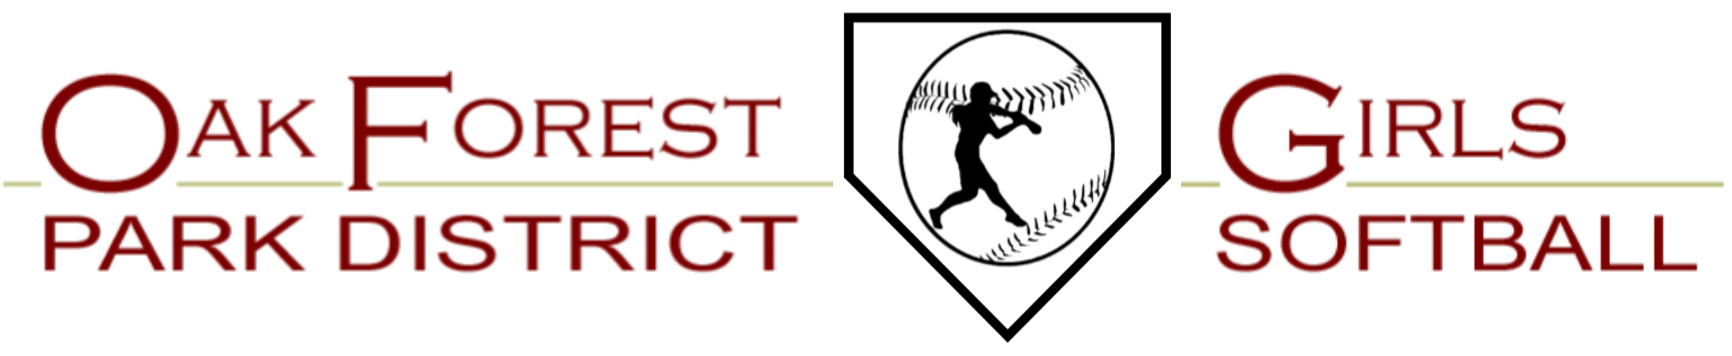 Oak Forest Park District Girls Softball Association, Softball, Run, Field